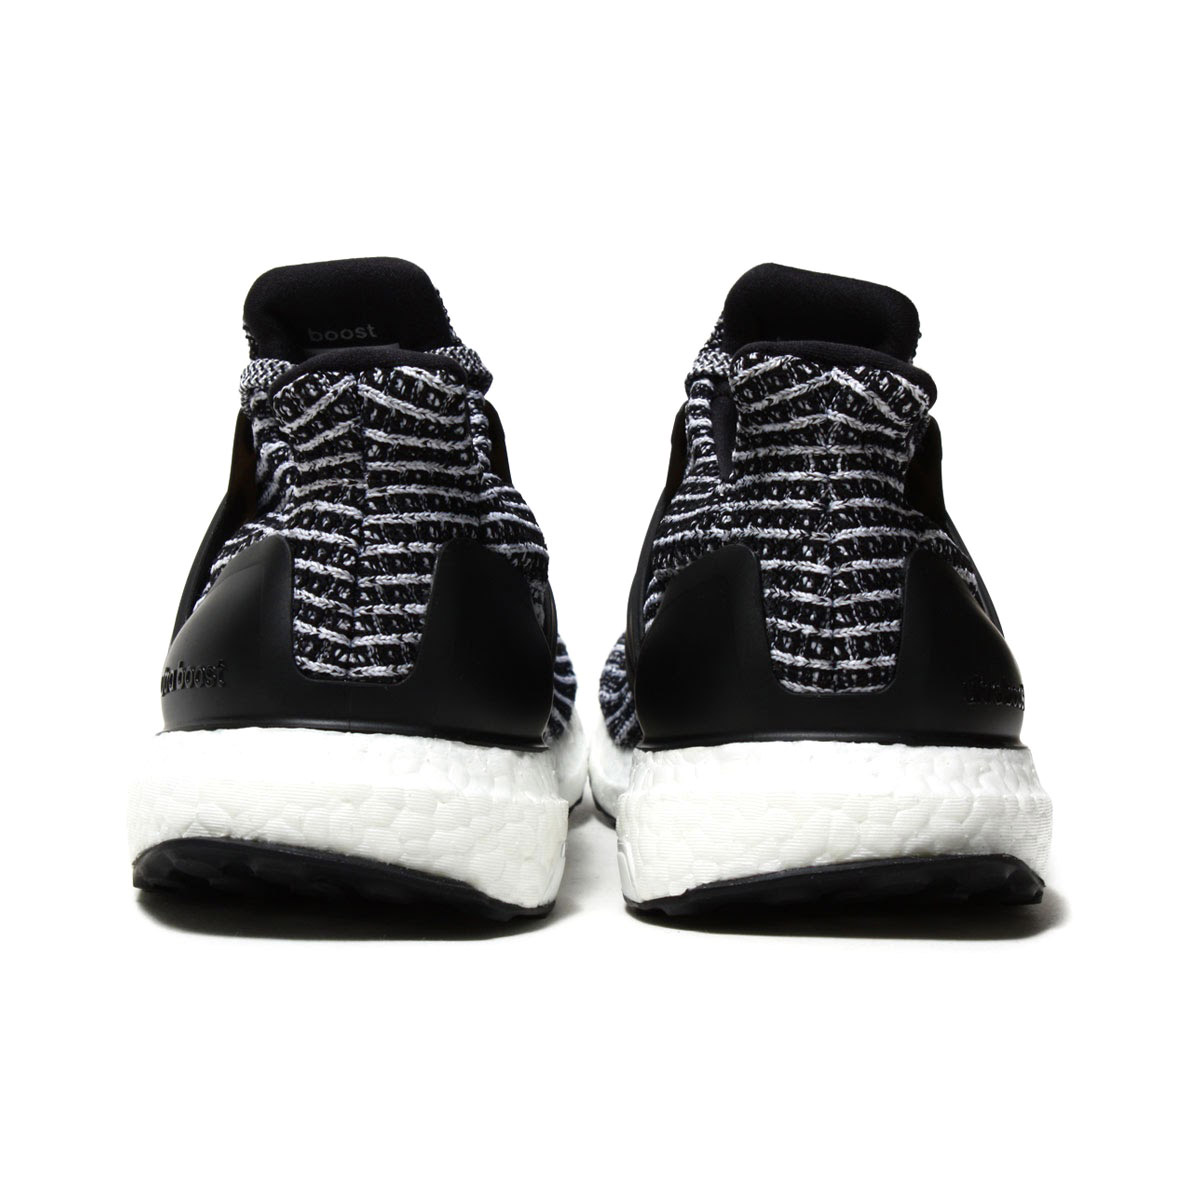 ea30736fd adidas Originals UltraBOOST CLIMA (アディダスオリジナルスウルトラブーストクライマ) (core black    core black   running white) 18SS-I